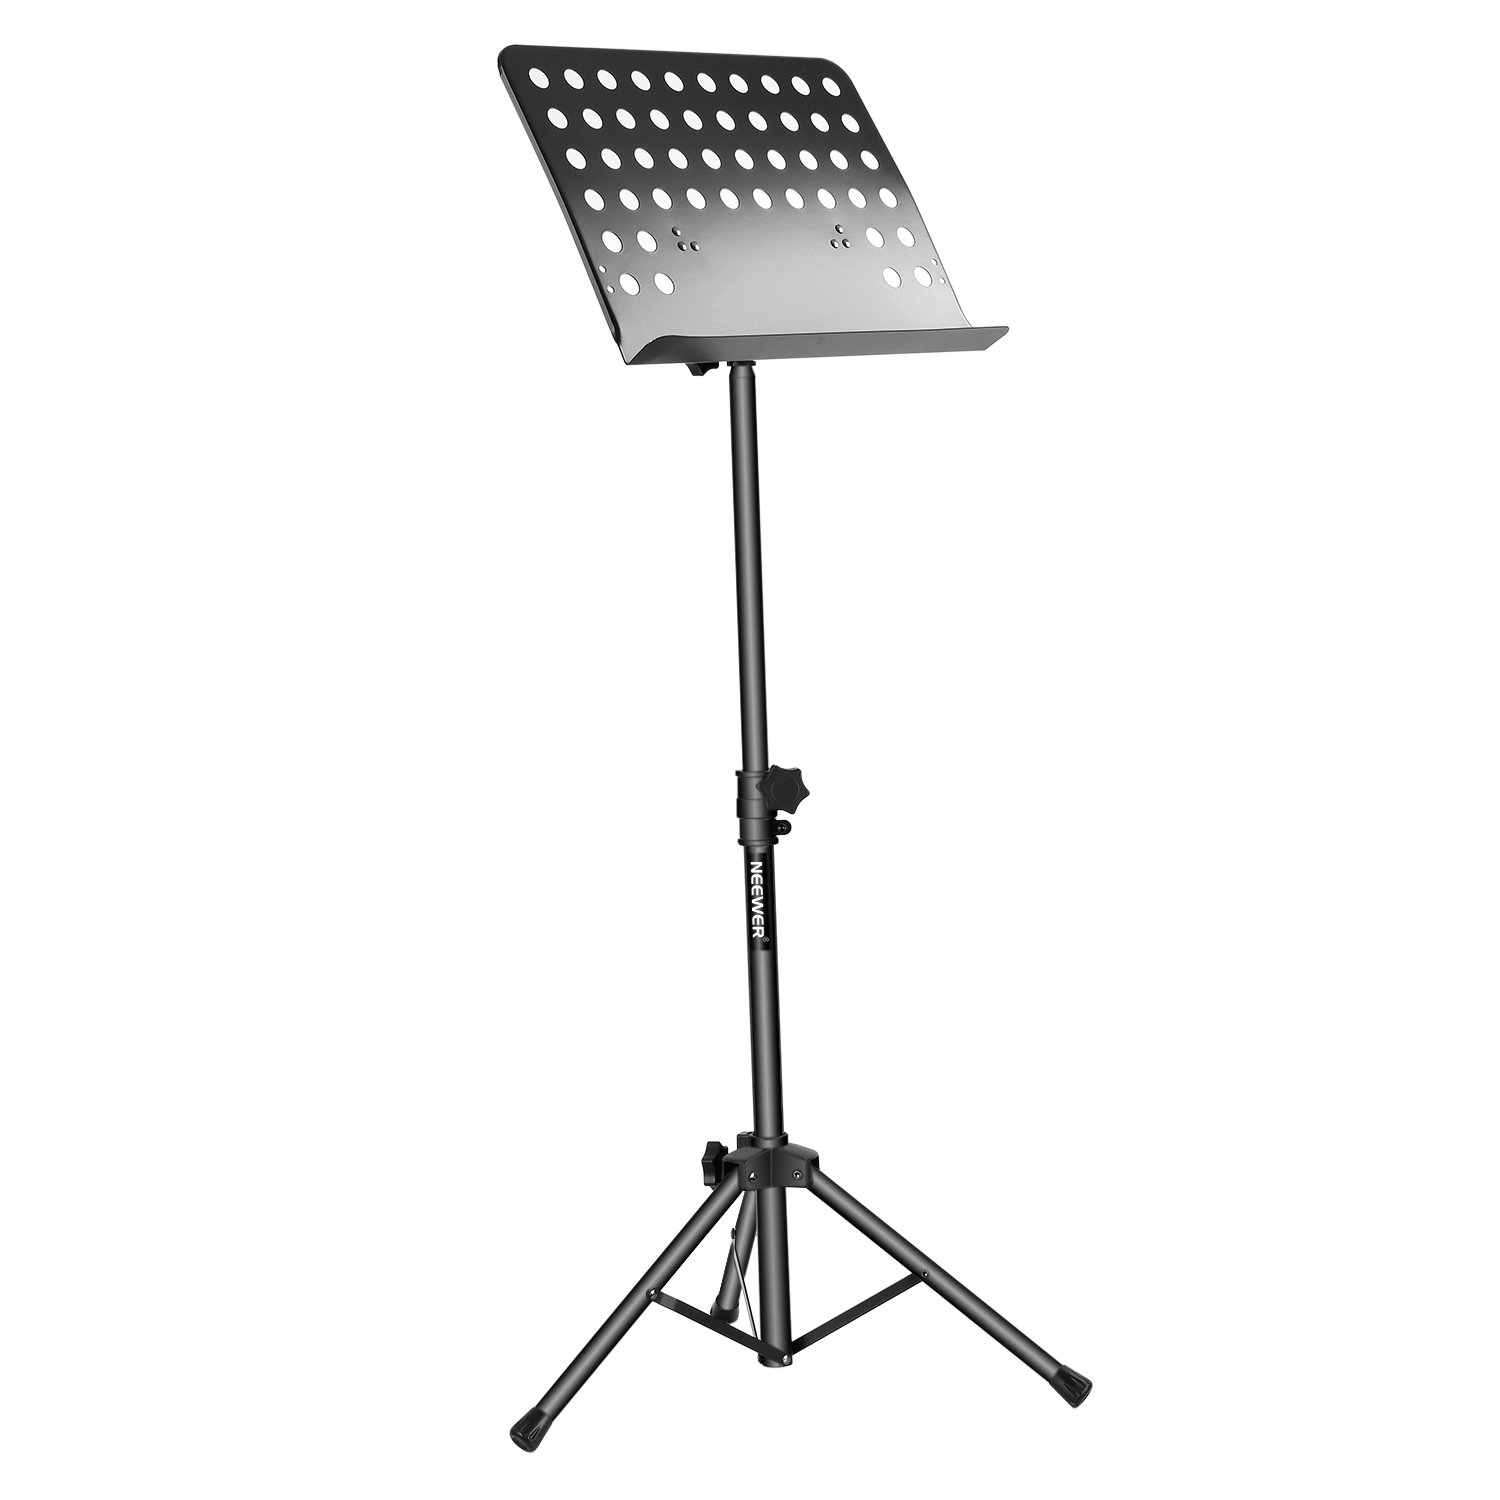 Neewer Collapsible Sheet Music Stand with 24.8-42.9 inches/63-109 centimeters Adjustable Height and 180 Degree Tray Tilt Bookplate, Durable,Lightweight and Portable for Instrumental Performance(Black) 40090226